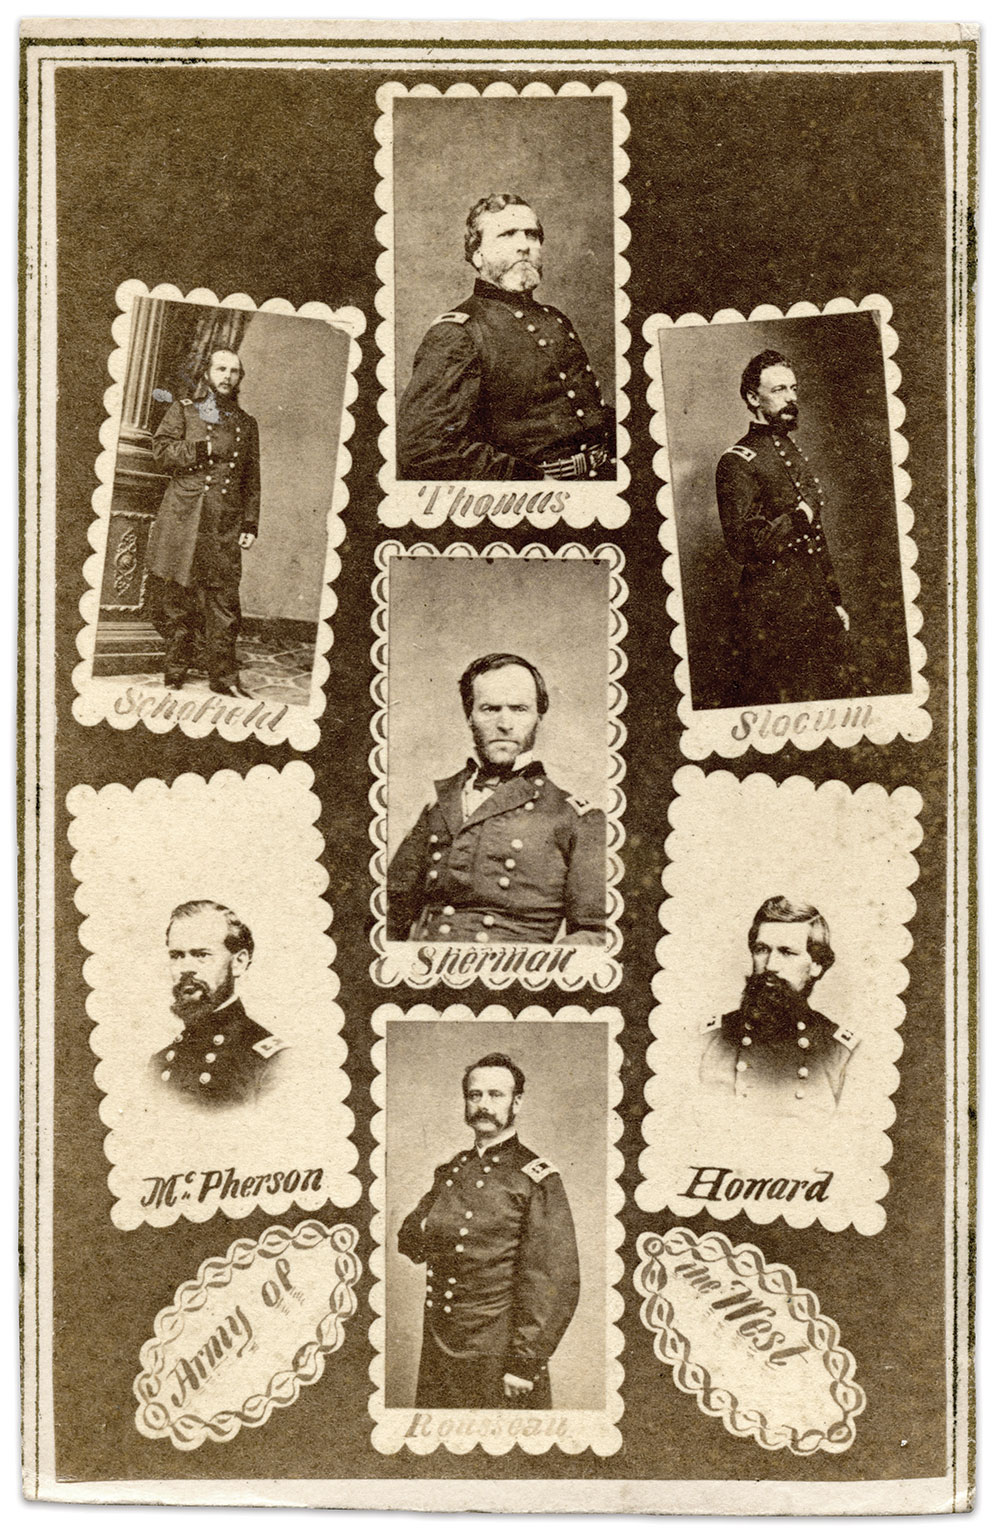 """SHERMAN: Maj. Gen. William T. Sherman and commanders in """"Army of the West,"""" left, a term used late in the war. The image dates prior to July 1864, when Maj. Gen. James B. McPherson suffered a fatal wound during the Atlanta Campaign."""